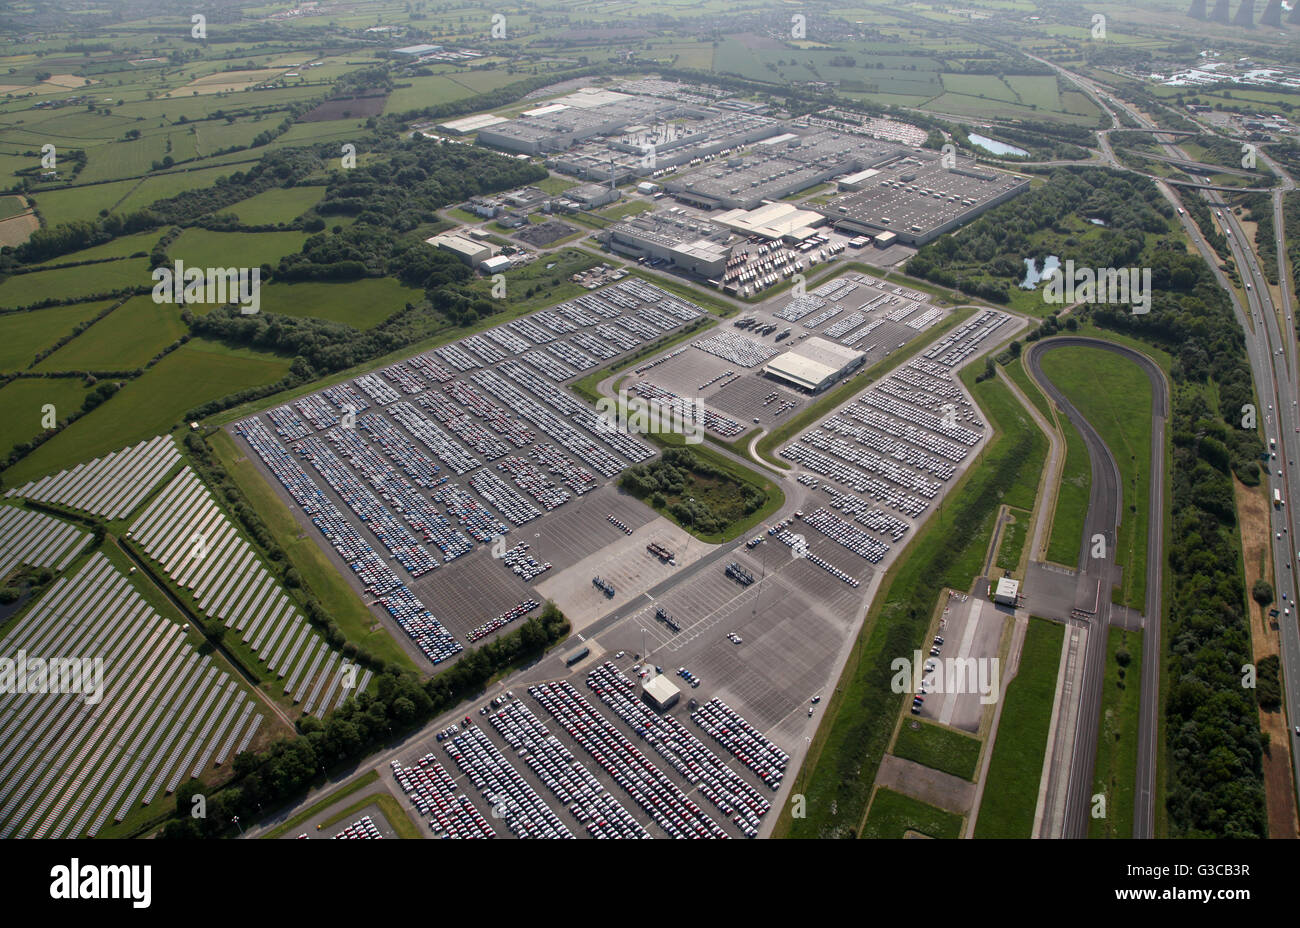 aerial view of Toyota Motor Manufacturing car production plant bear Derby, UK Stock Photo